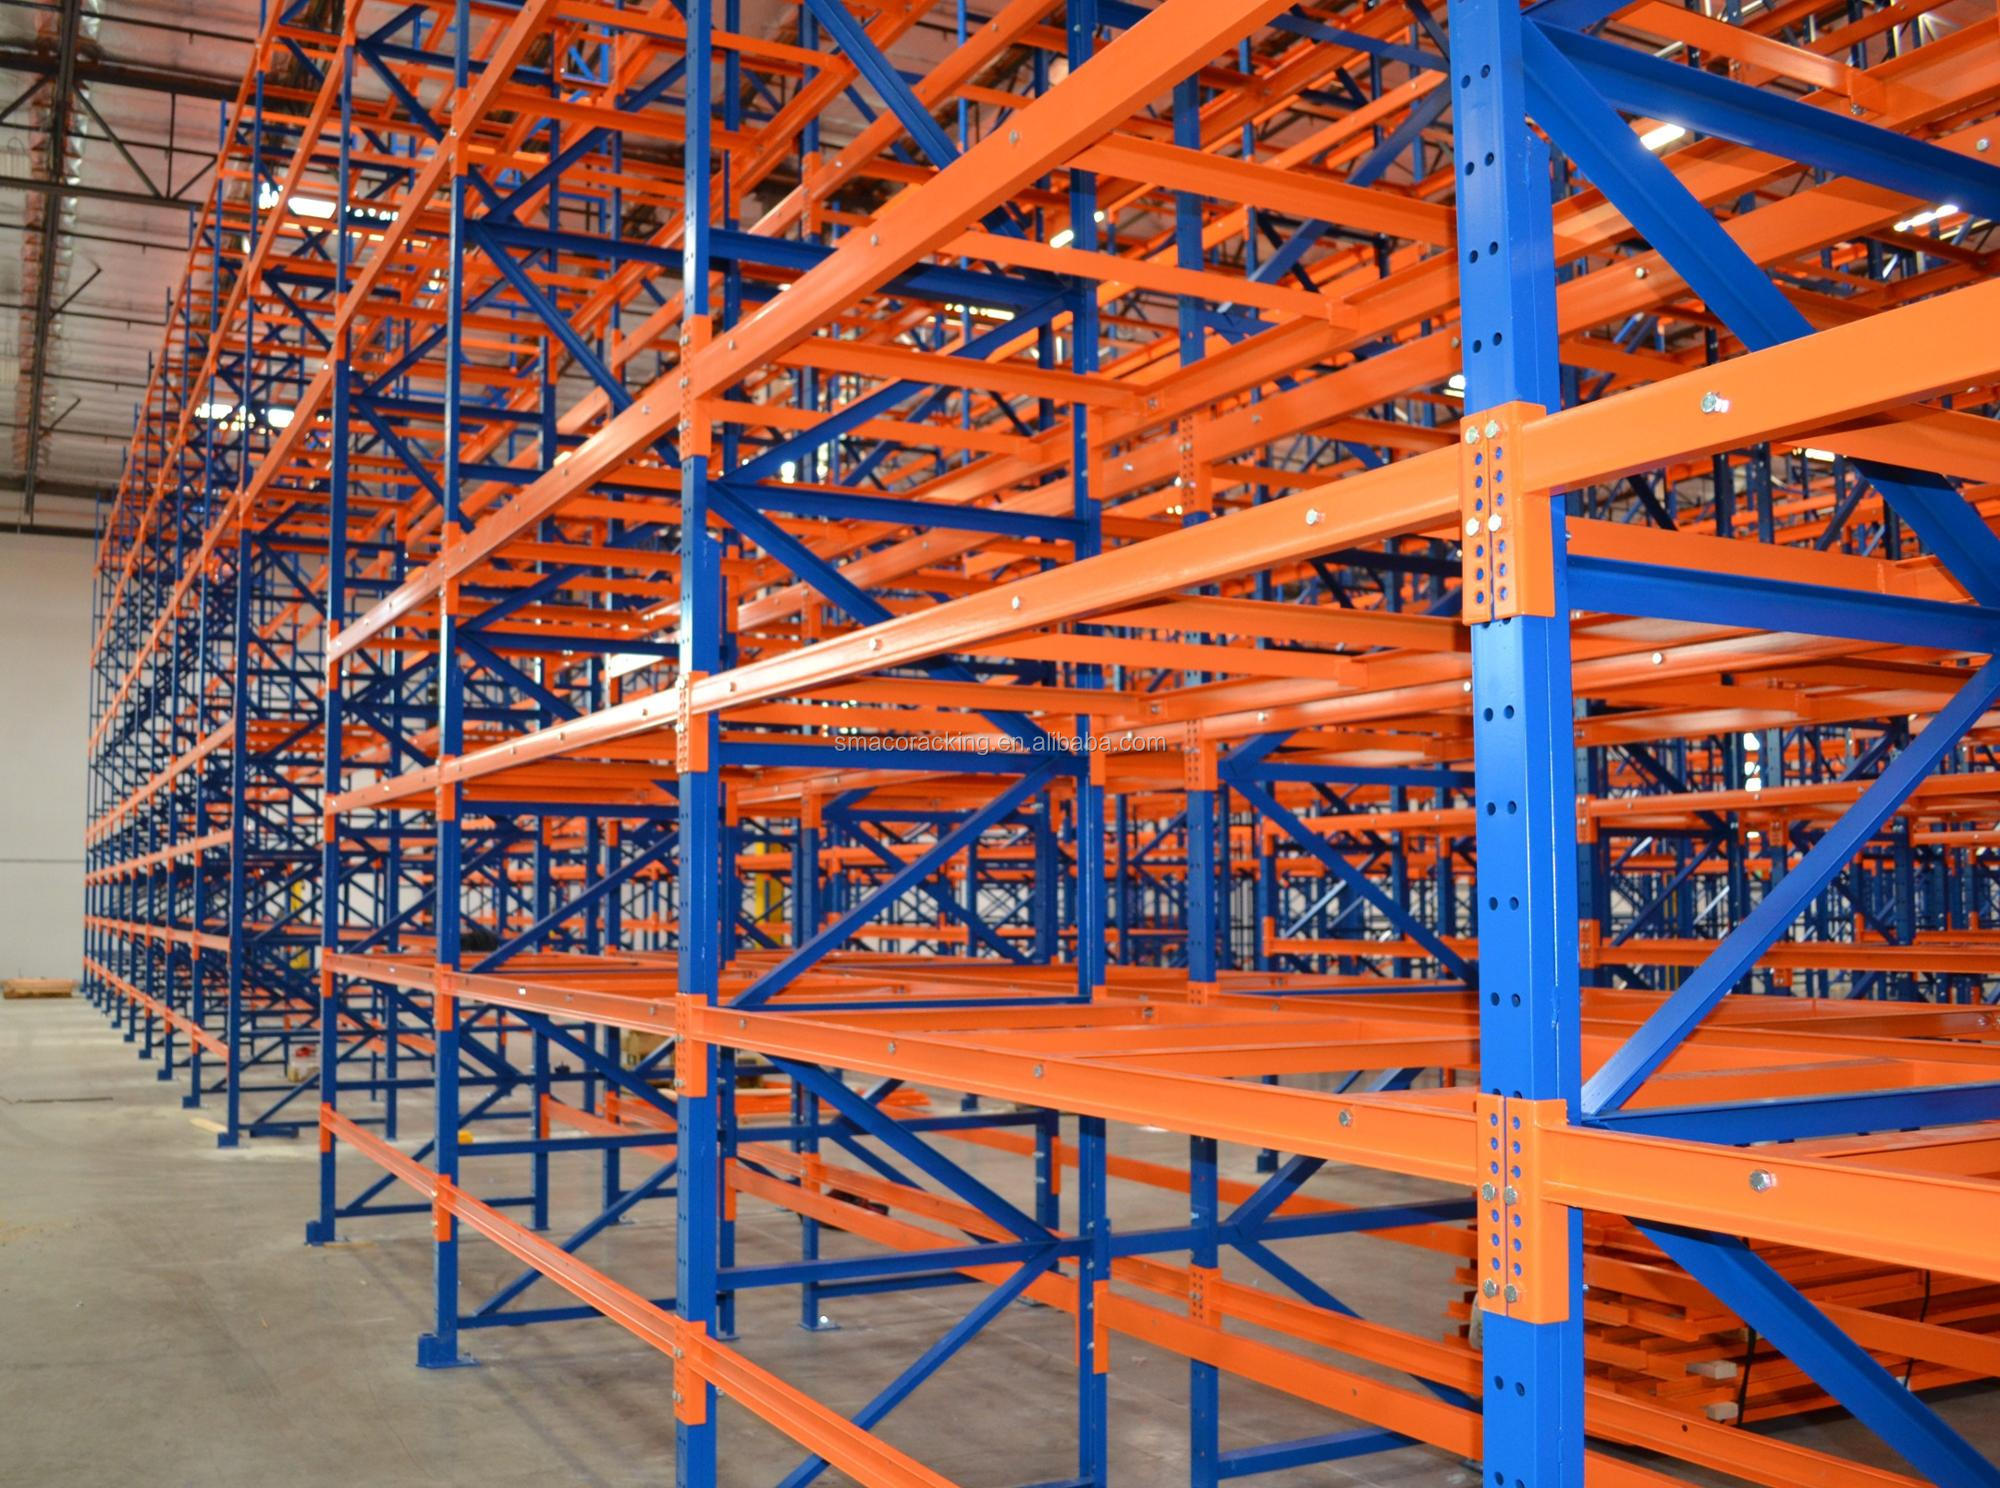 High Tech Heavy Duty Rack Warehouse Shelving Adjustable Storage Racking